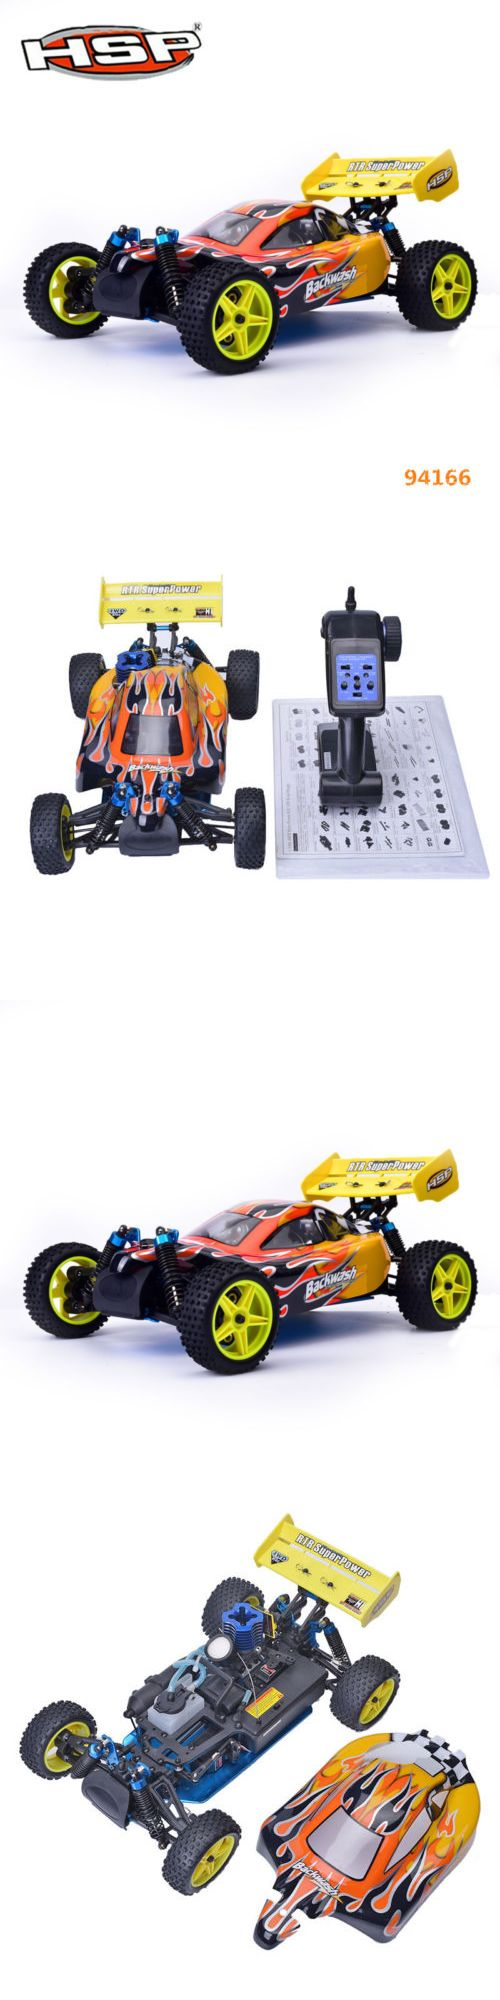 Cars trucks and motorcycles 182183 hsp rc car 1 10 scale nitro gas power 4wd